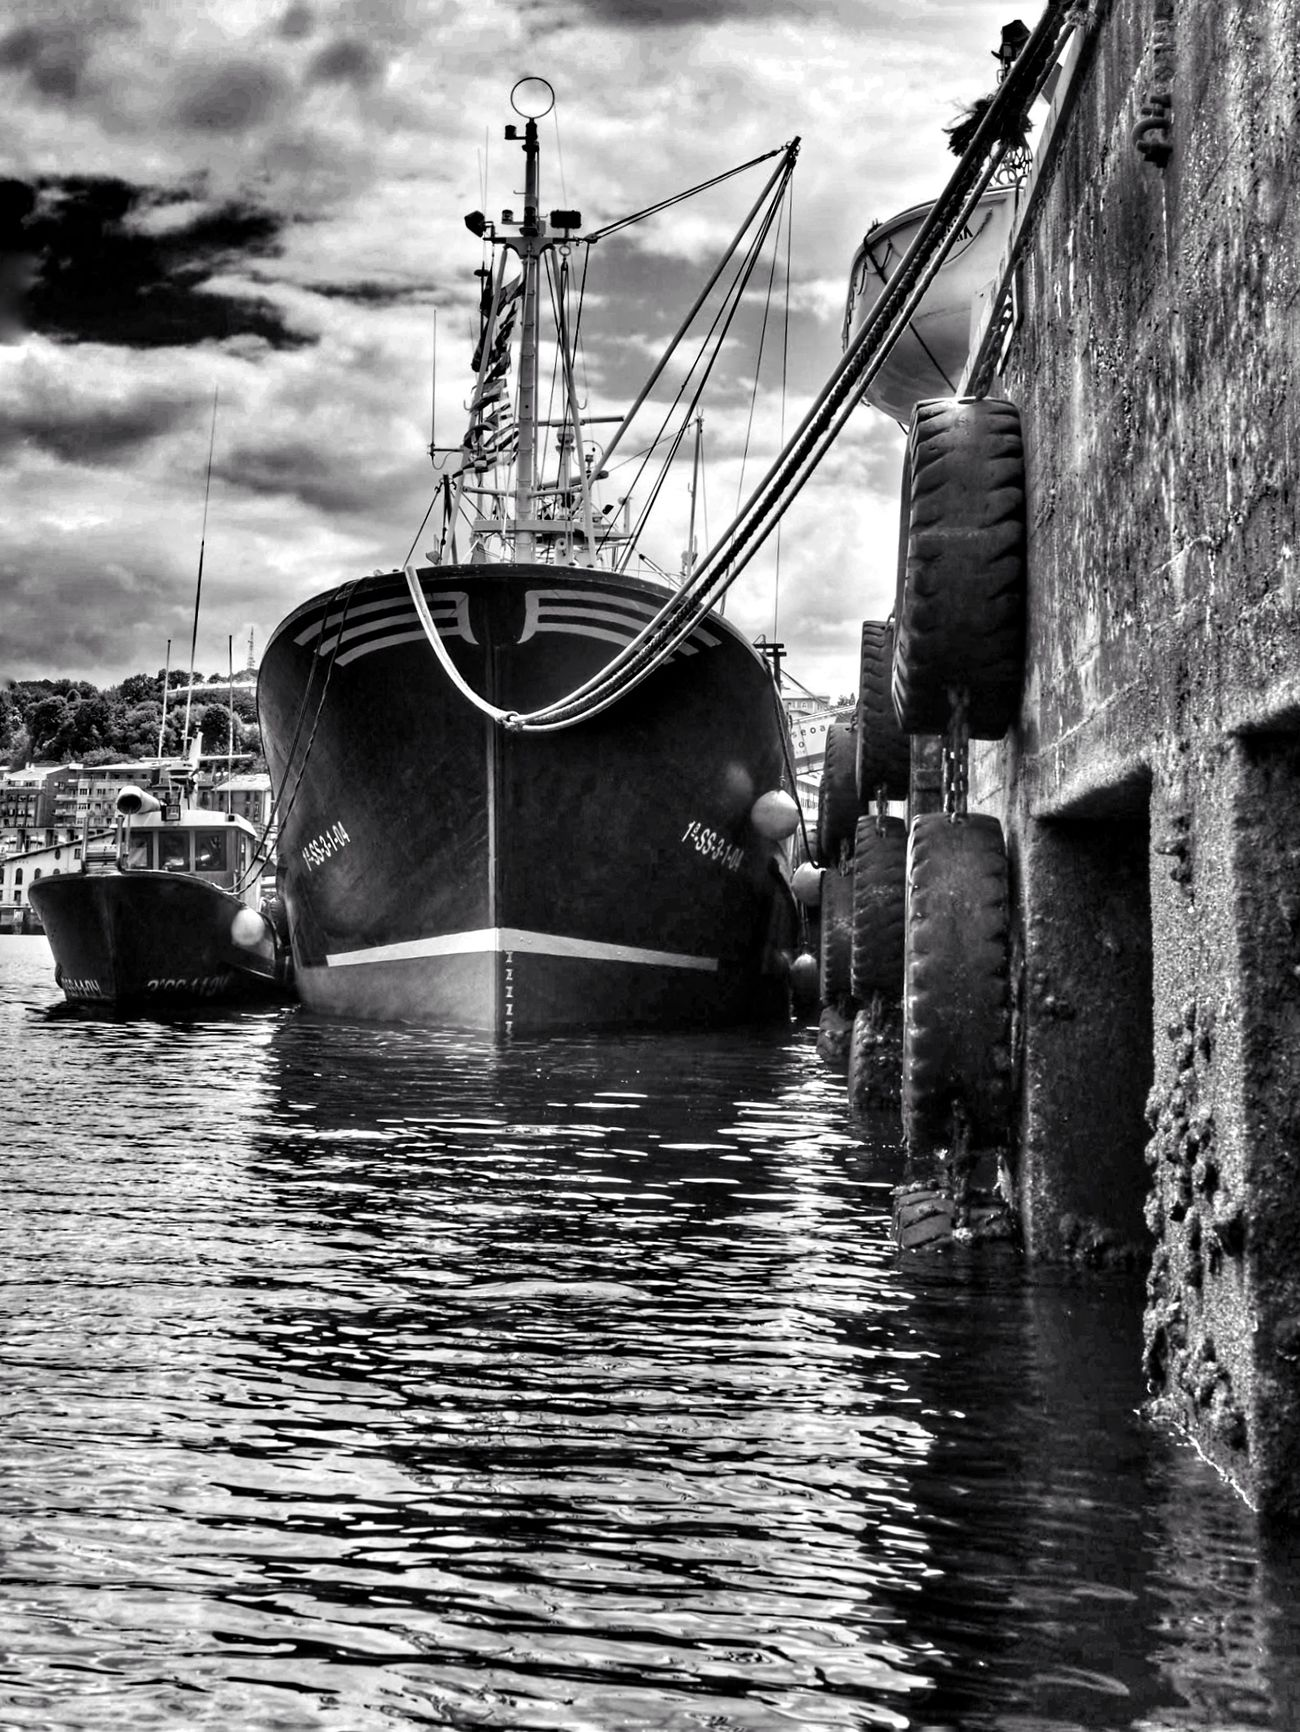 David y Goliat Water Nautical Vessel Cloud - Sky Sky Outdoors Moored No People Day Harbor Sailing Ship Blackandwhite Blackandwhite Photography Boats Capture The Moment EyeEm Best Shots EyeEm Nature Lover Vscocam Streetphoto_bw Dramatic Sky The Great Outdoors - 2017 EyeEm Awards